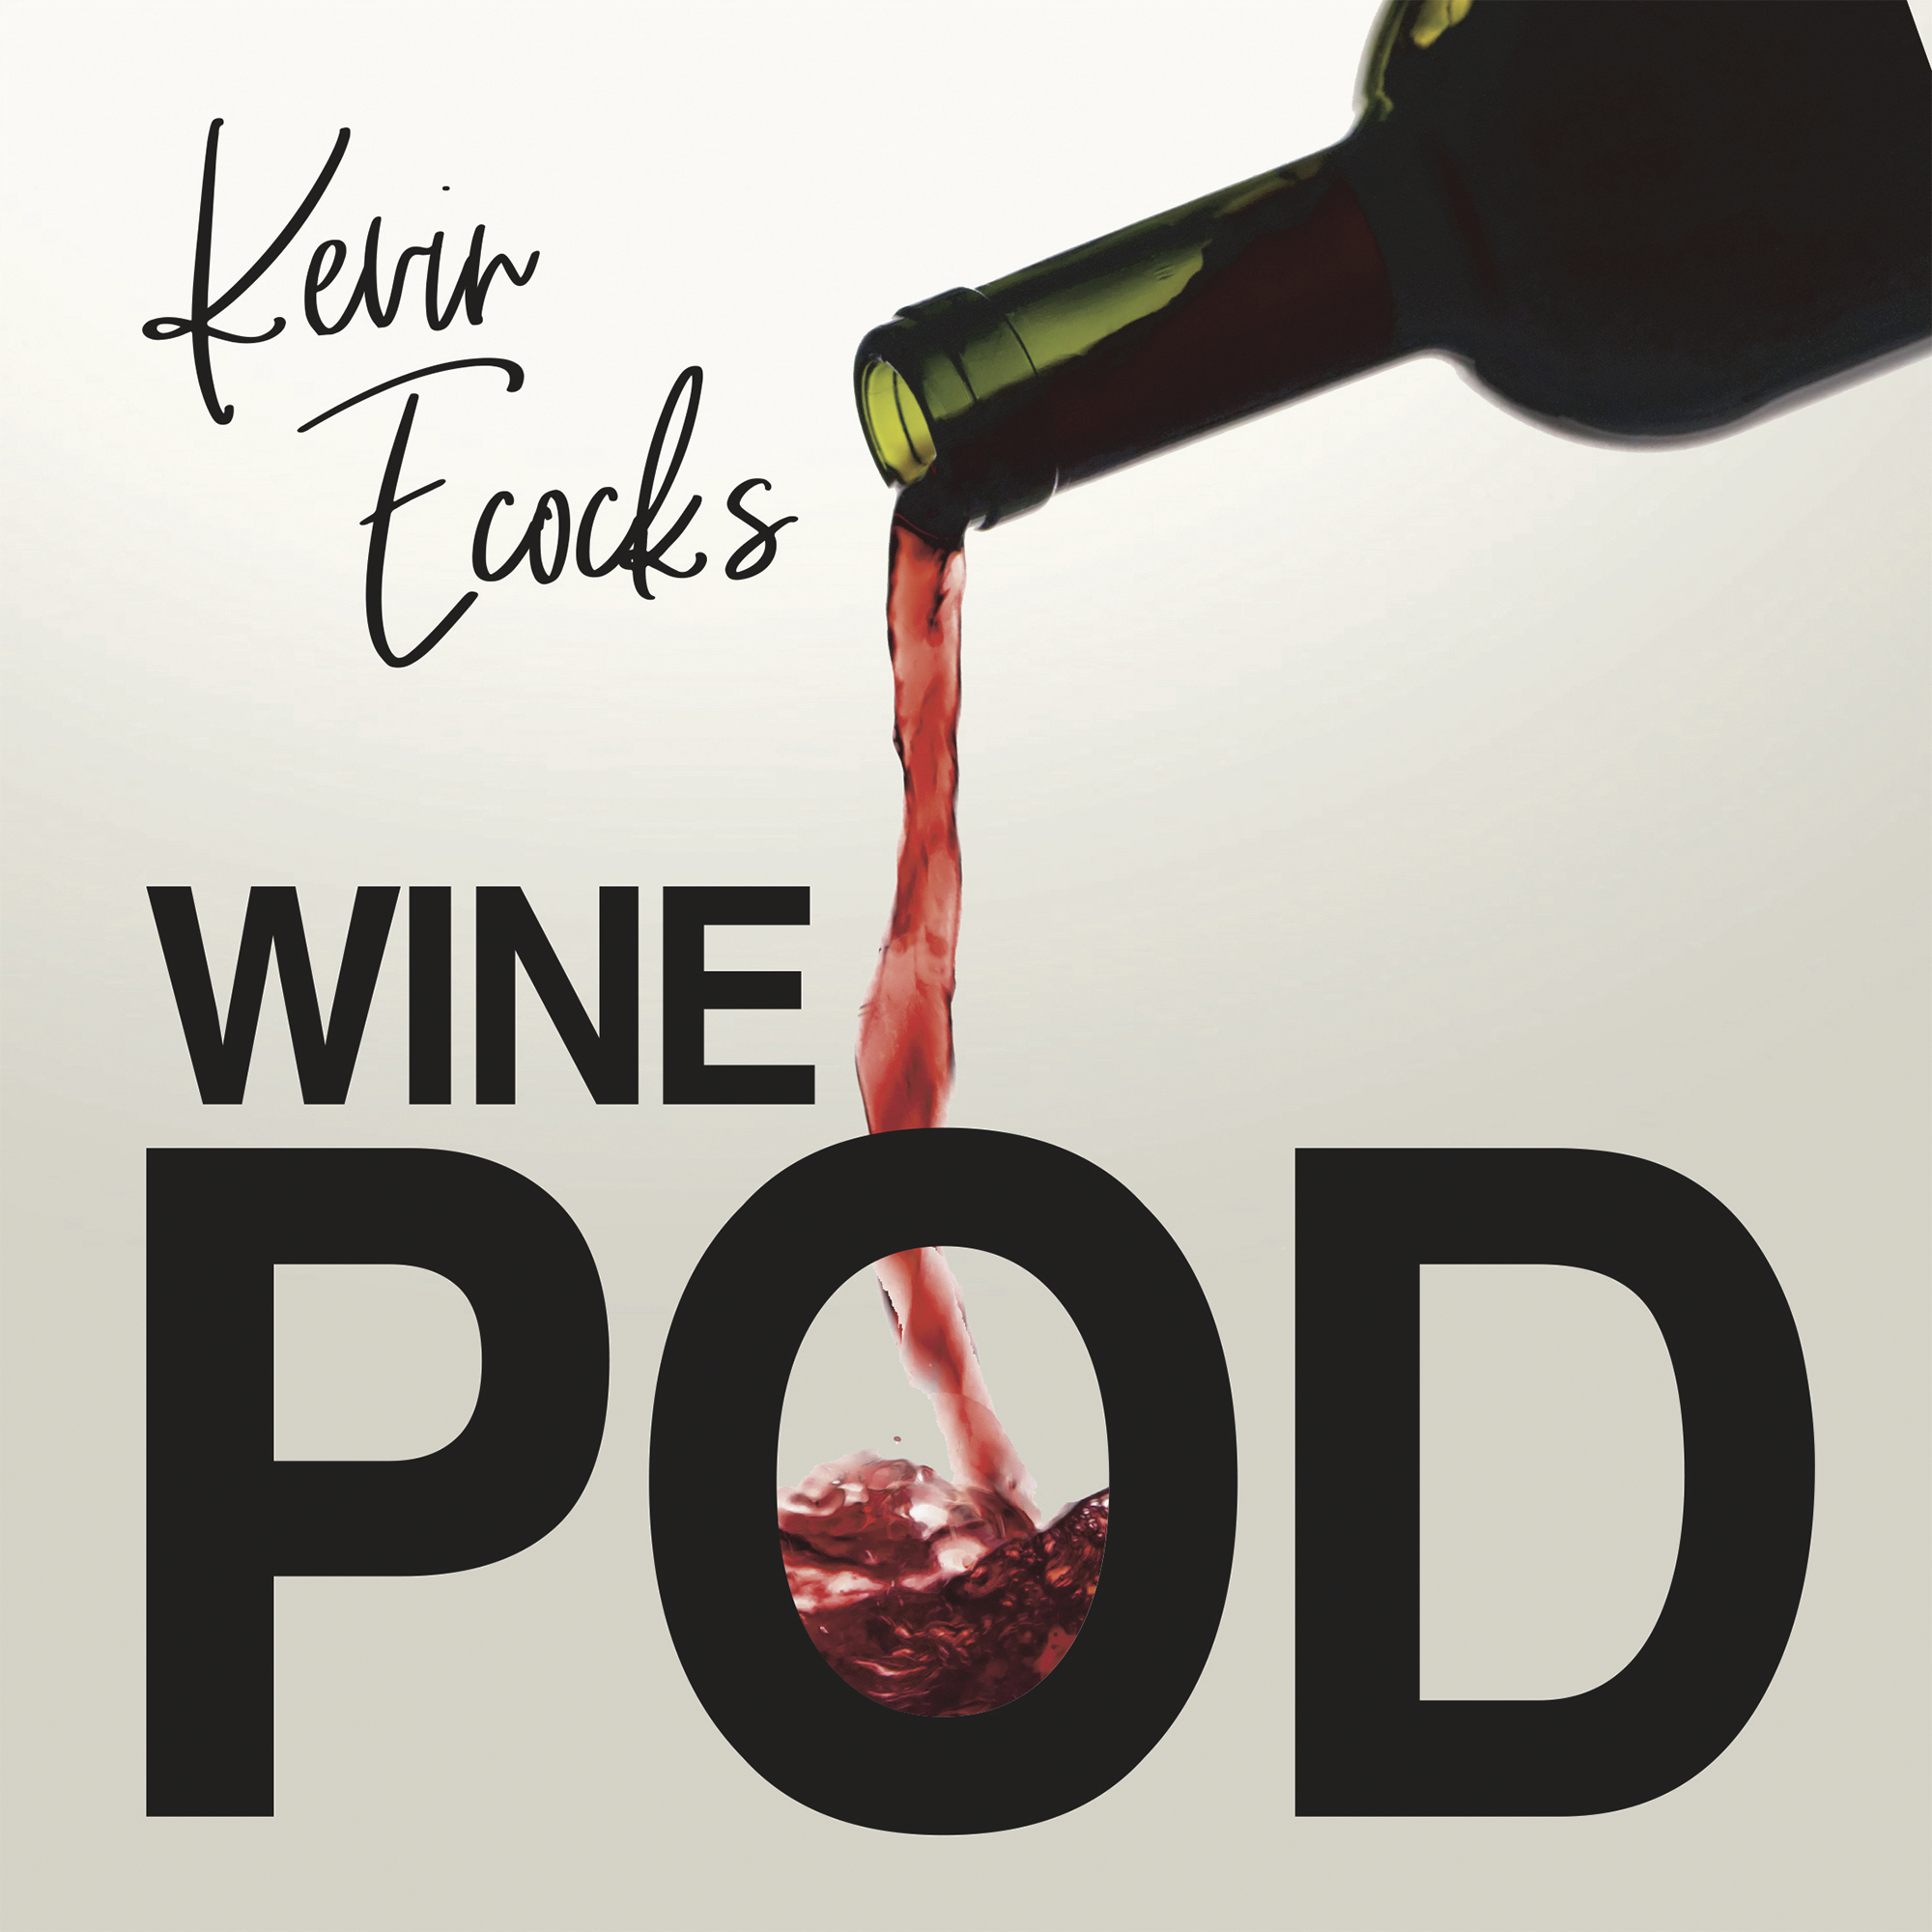 Kevin Ecock's WinePod show art